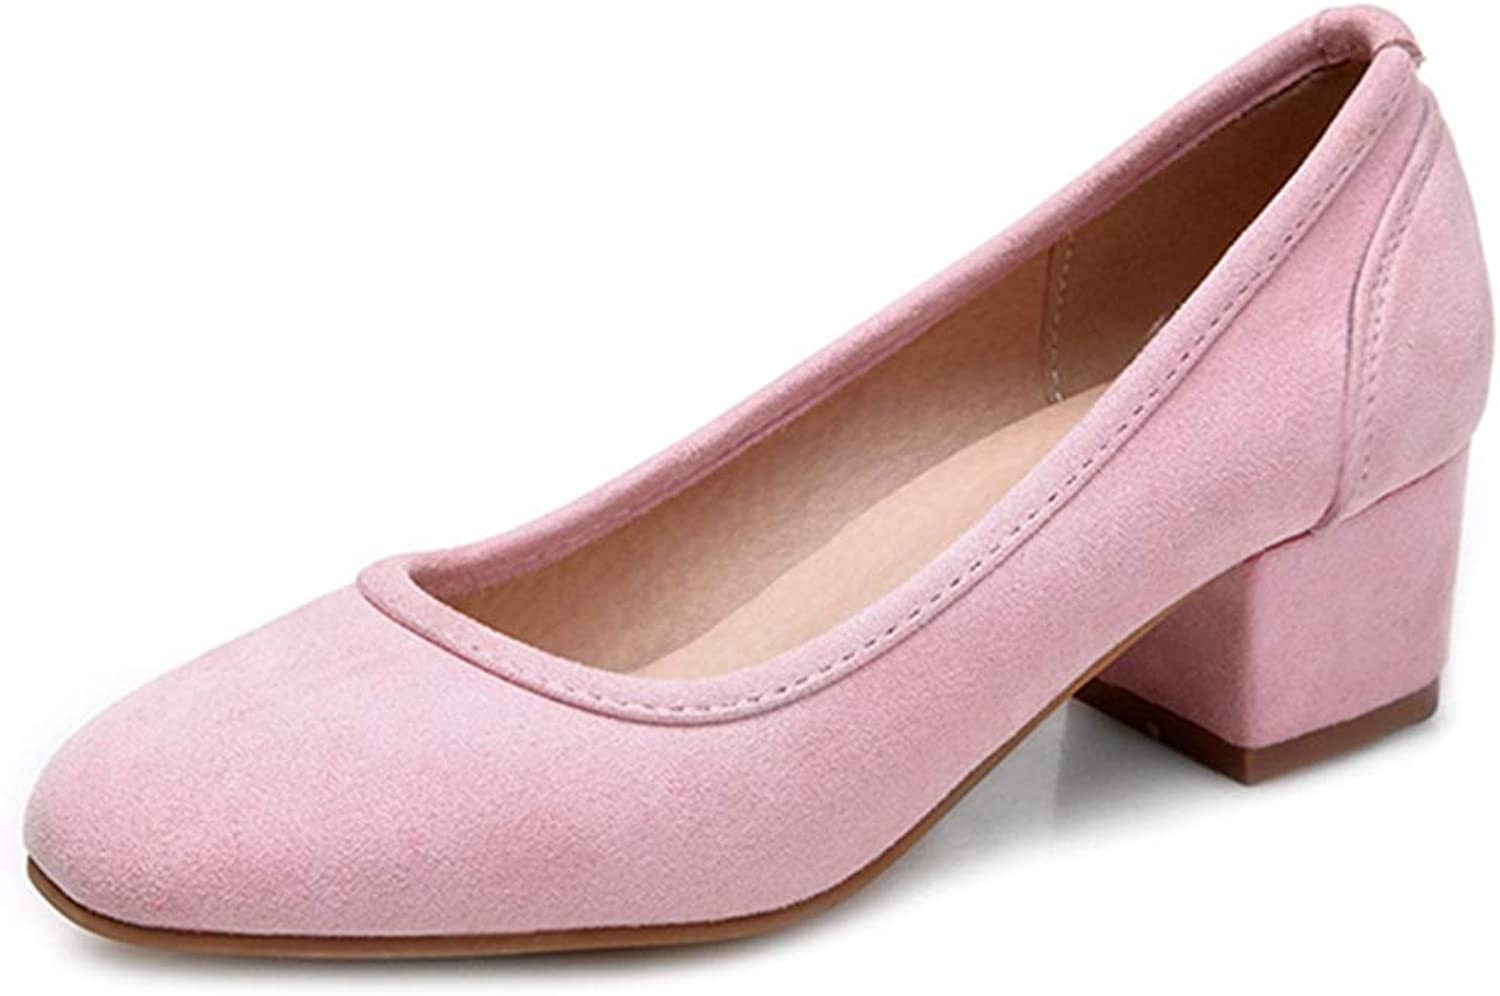 GIY Suede Oxfords Pumps for Womens, Slip-On Square Toe Chunky Block Mid Heels Loafers shoes Casual Work Pump